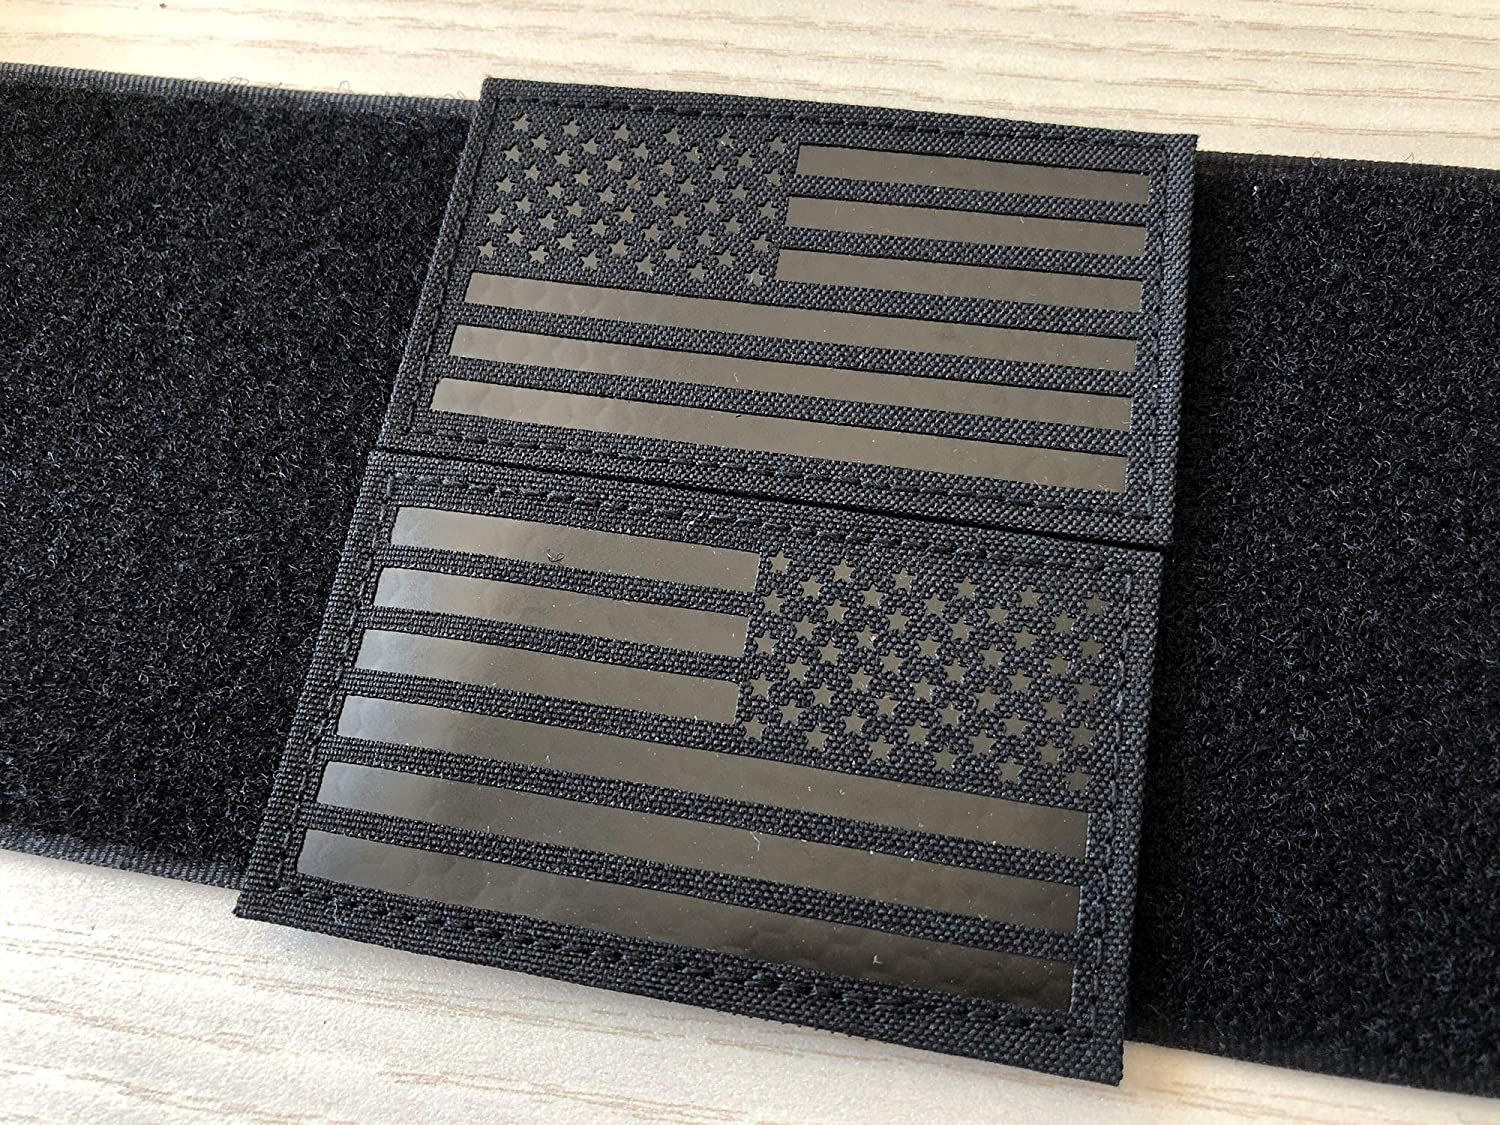 SUVIYA 2x3.5 inch Black Infrared IR US USA American Flag Patch with Hook/Loop (Forward and Reversed)